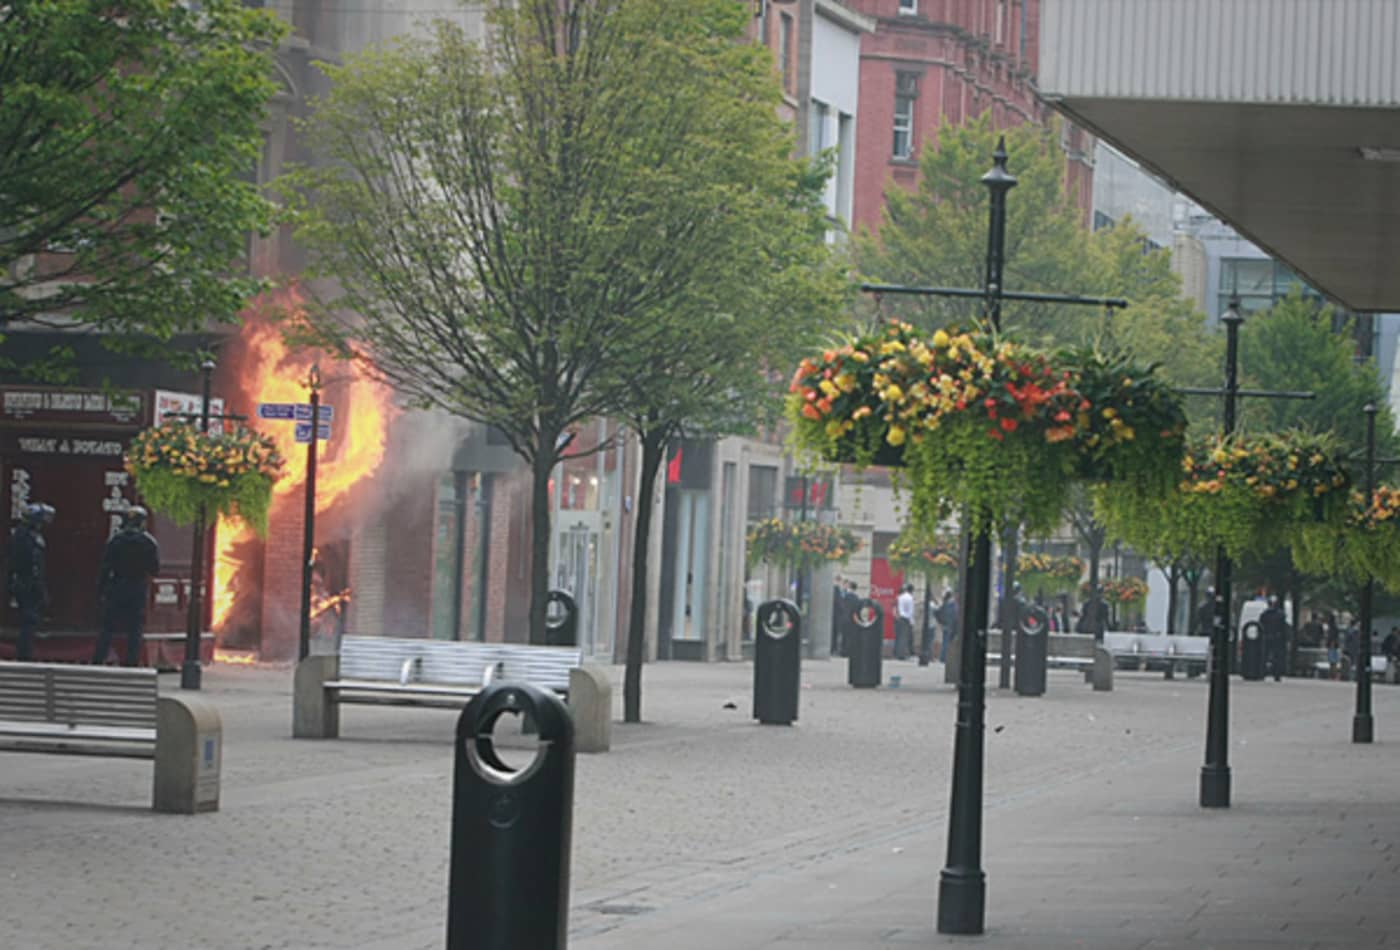 CNBC_scenes_from_london_riots_manchester_fire.jpg